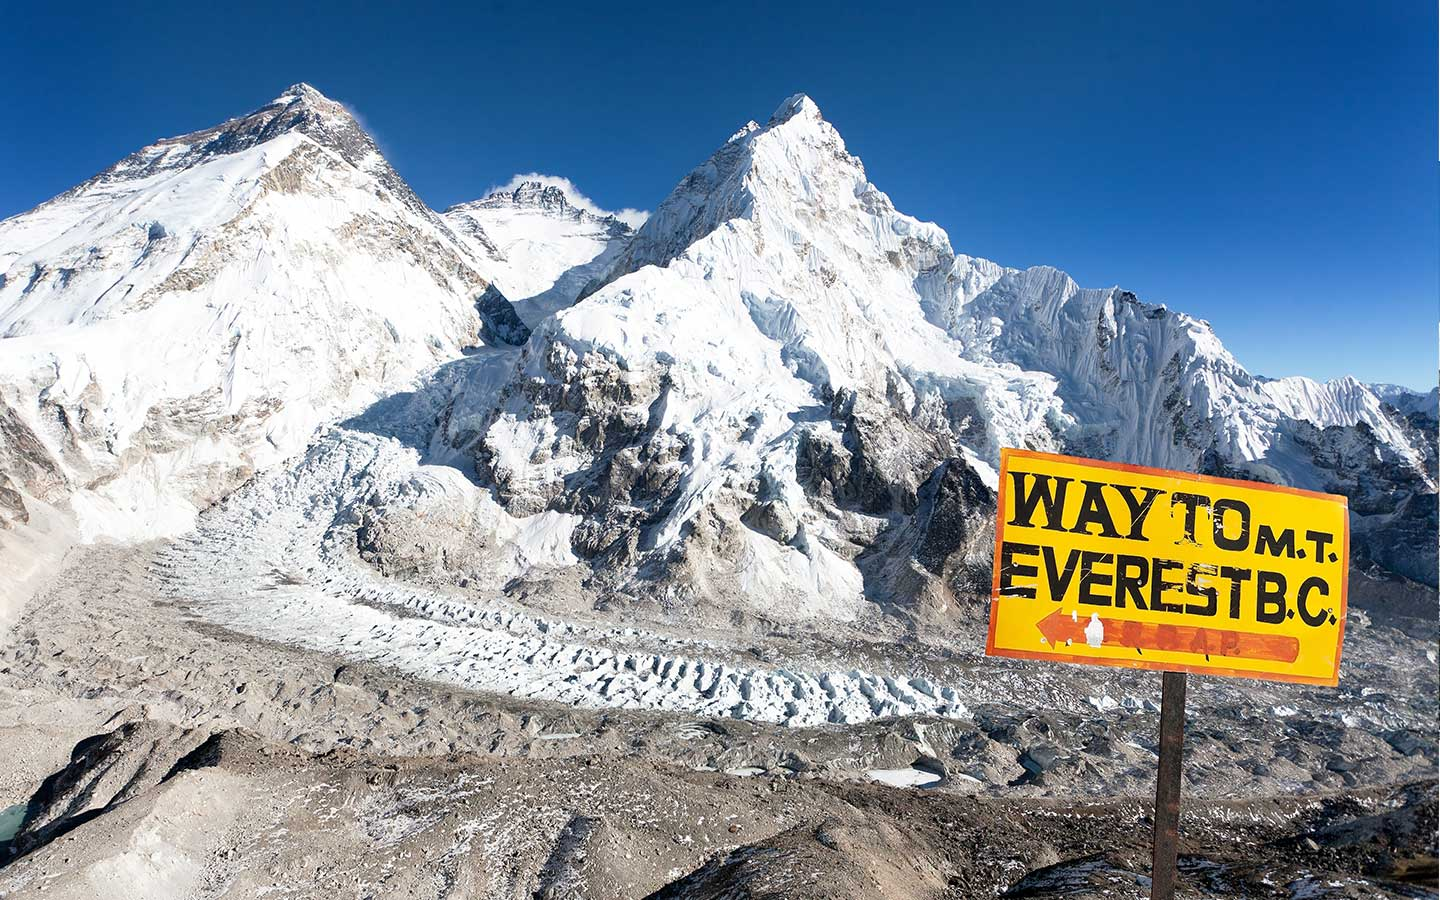 everest base camp trekking route